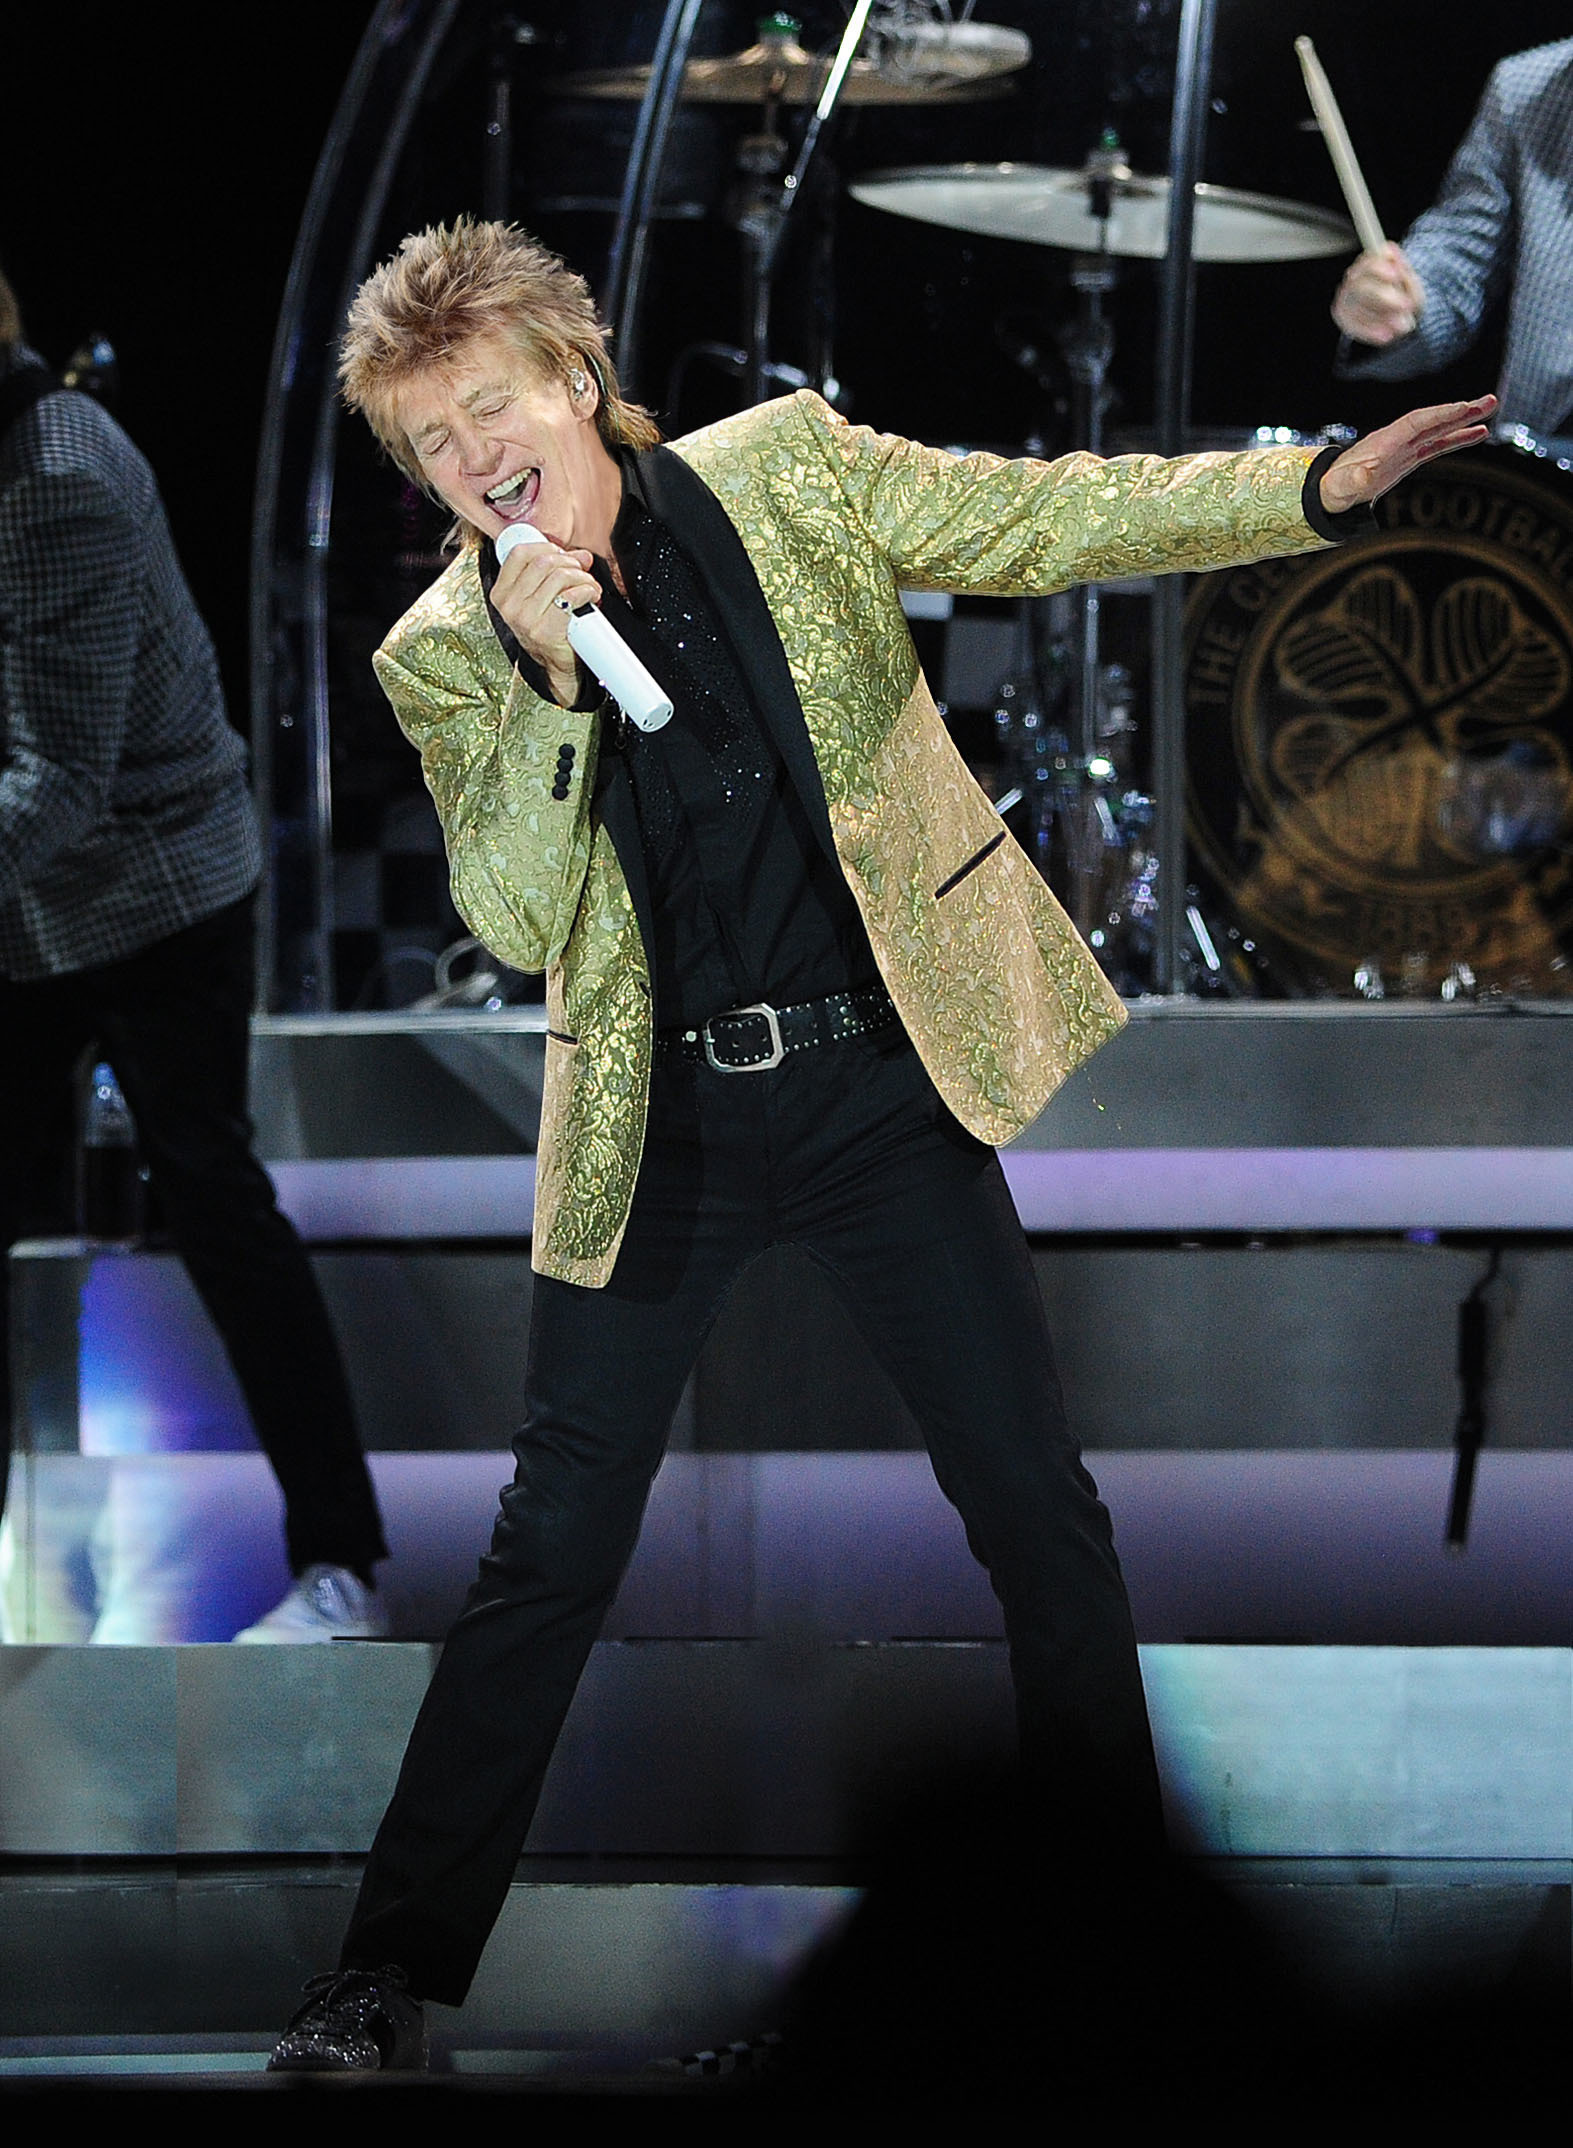 ** NO SYNDICATION PERMITTED ** Rod Stewart performing at the Manchester Arena, Manchester, United Kingdom.  8 December 2016. Photograph Credit : Sean Hansford